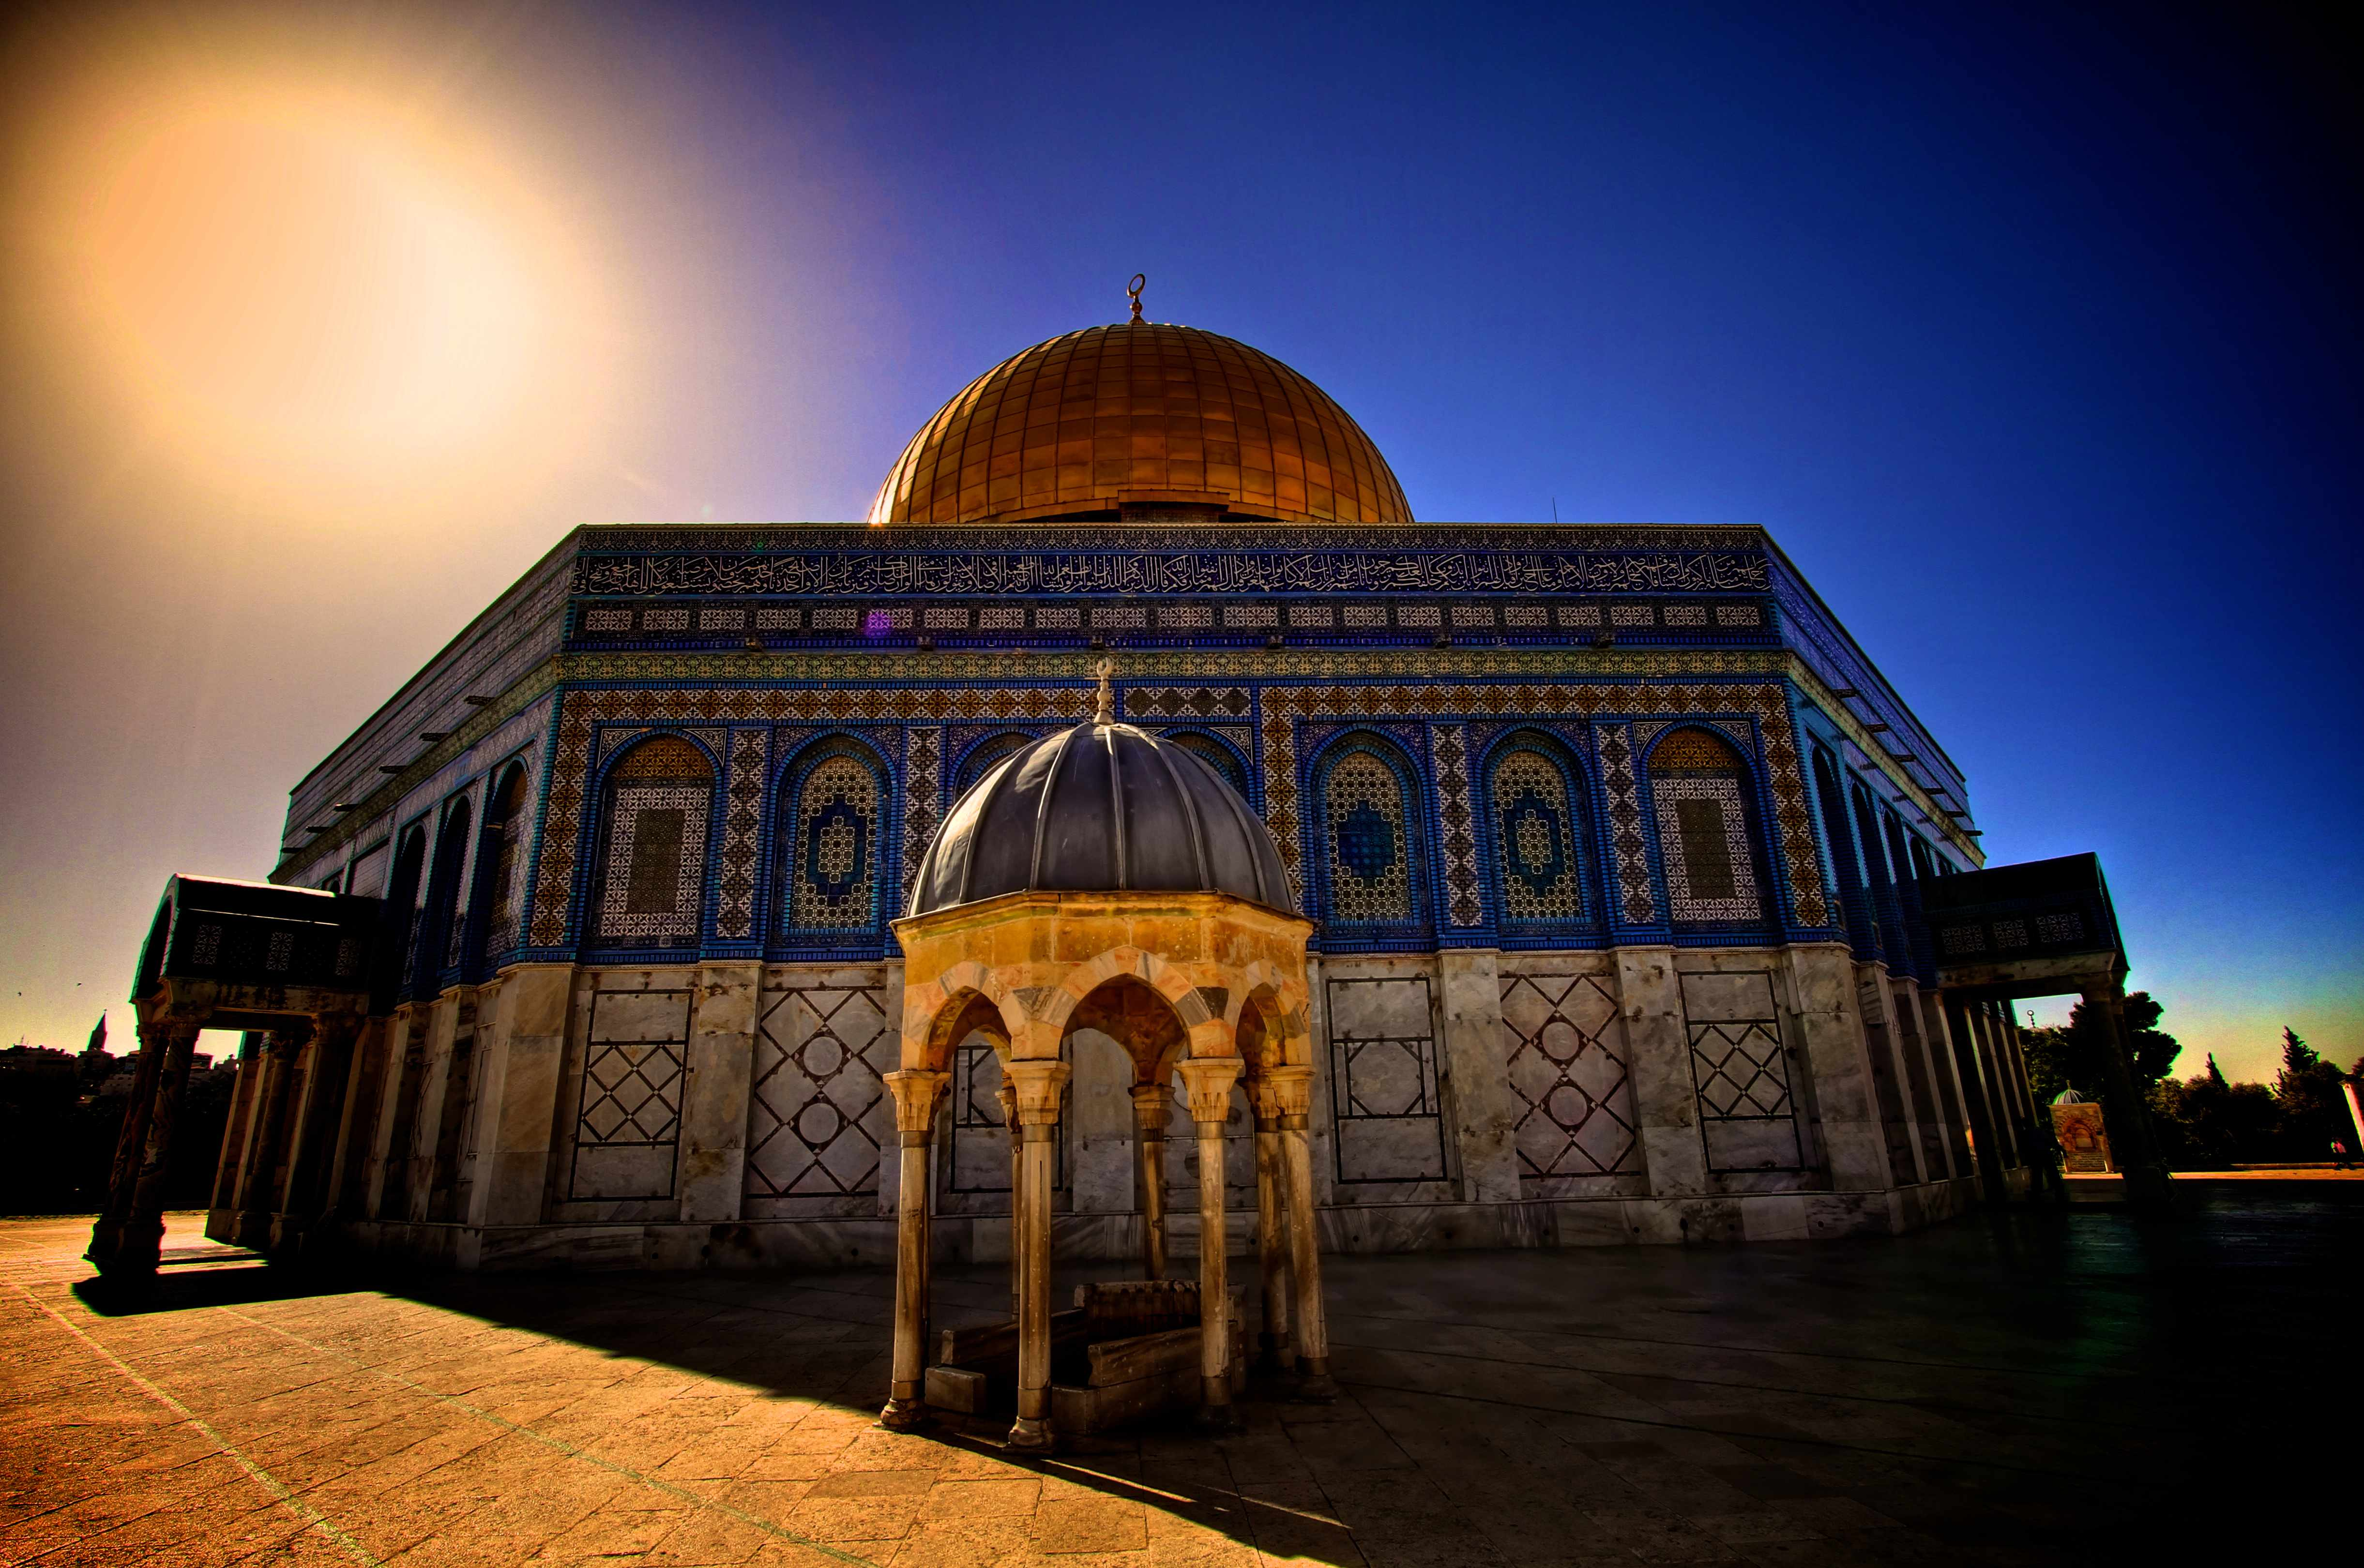 Jerusalem's magnificent Dome of the Rock was deliberately designed to put a Muslim stamp on what had previously been a Christian city. (Getty Images)